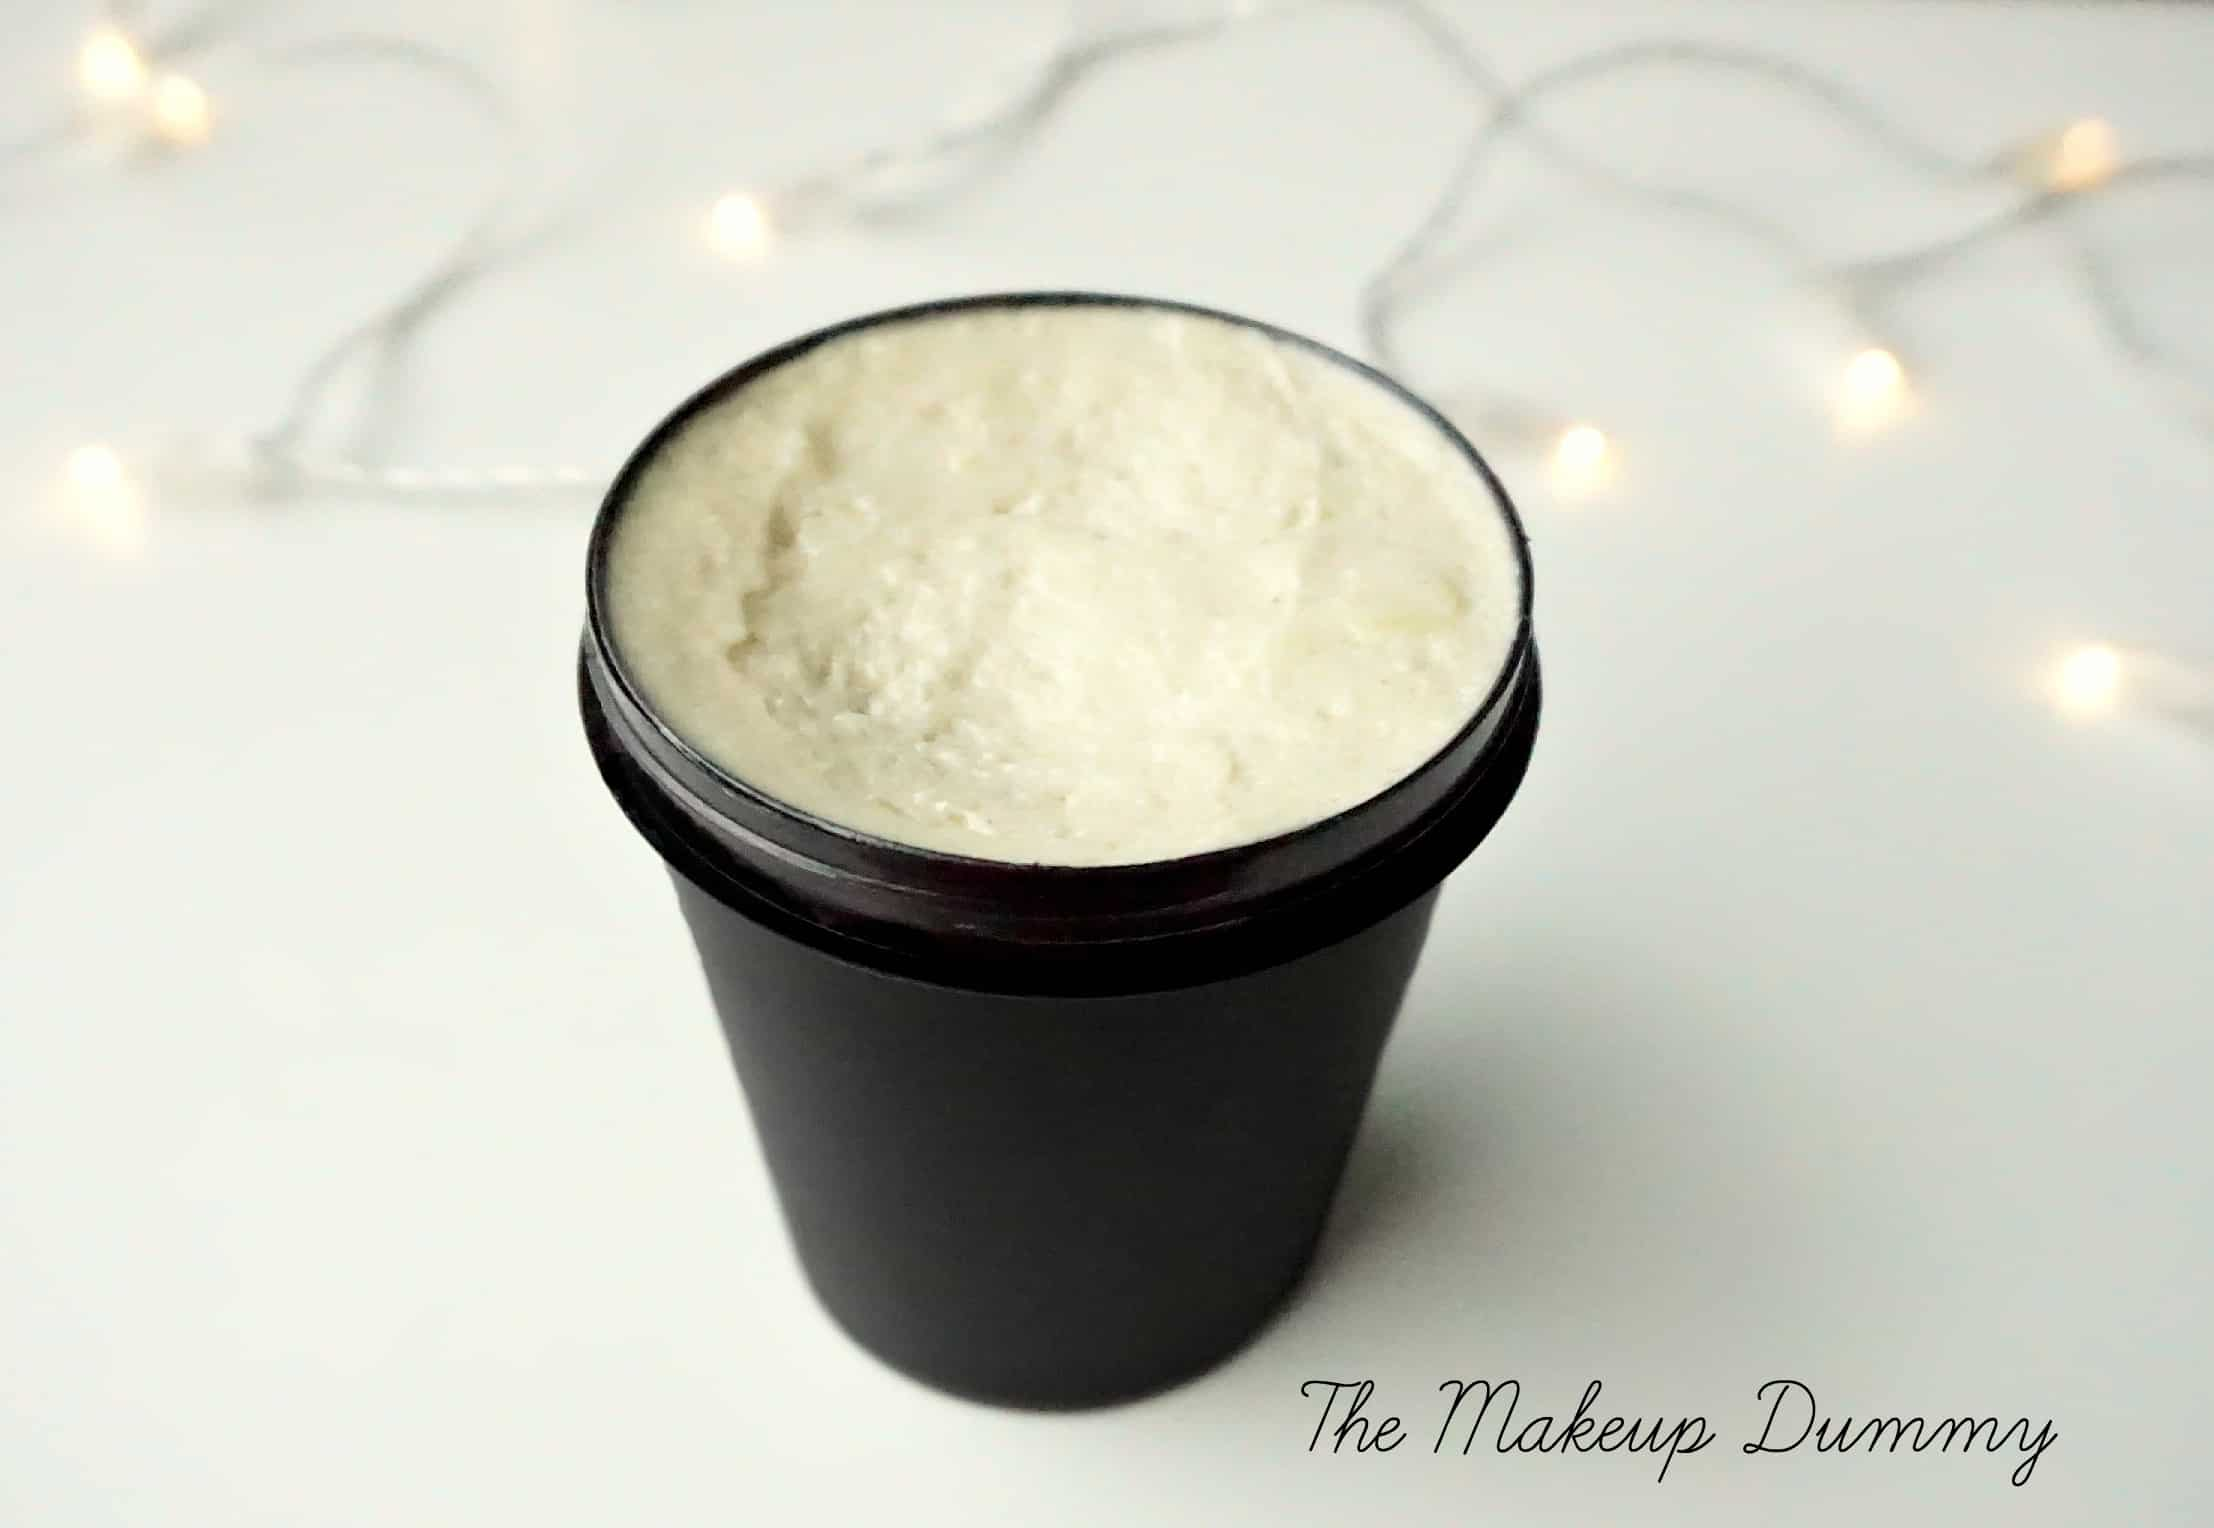 DUPE LUSH Dream Cream Body Cream | Copycat DIY by The Makeup Dummy